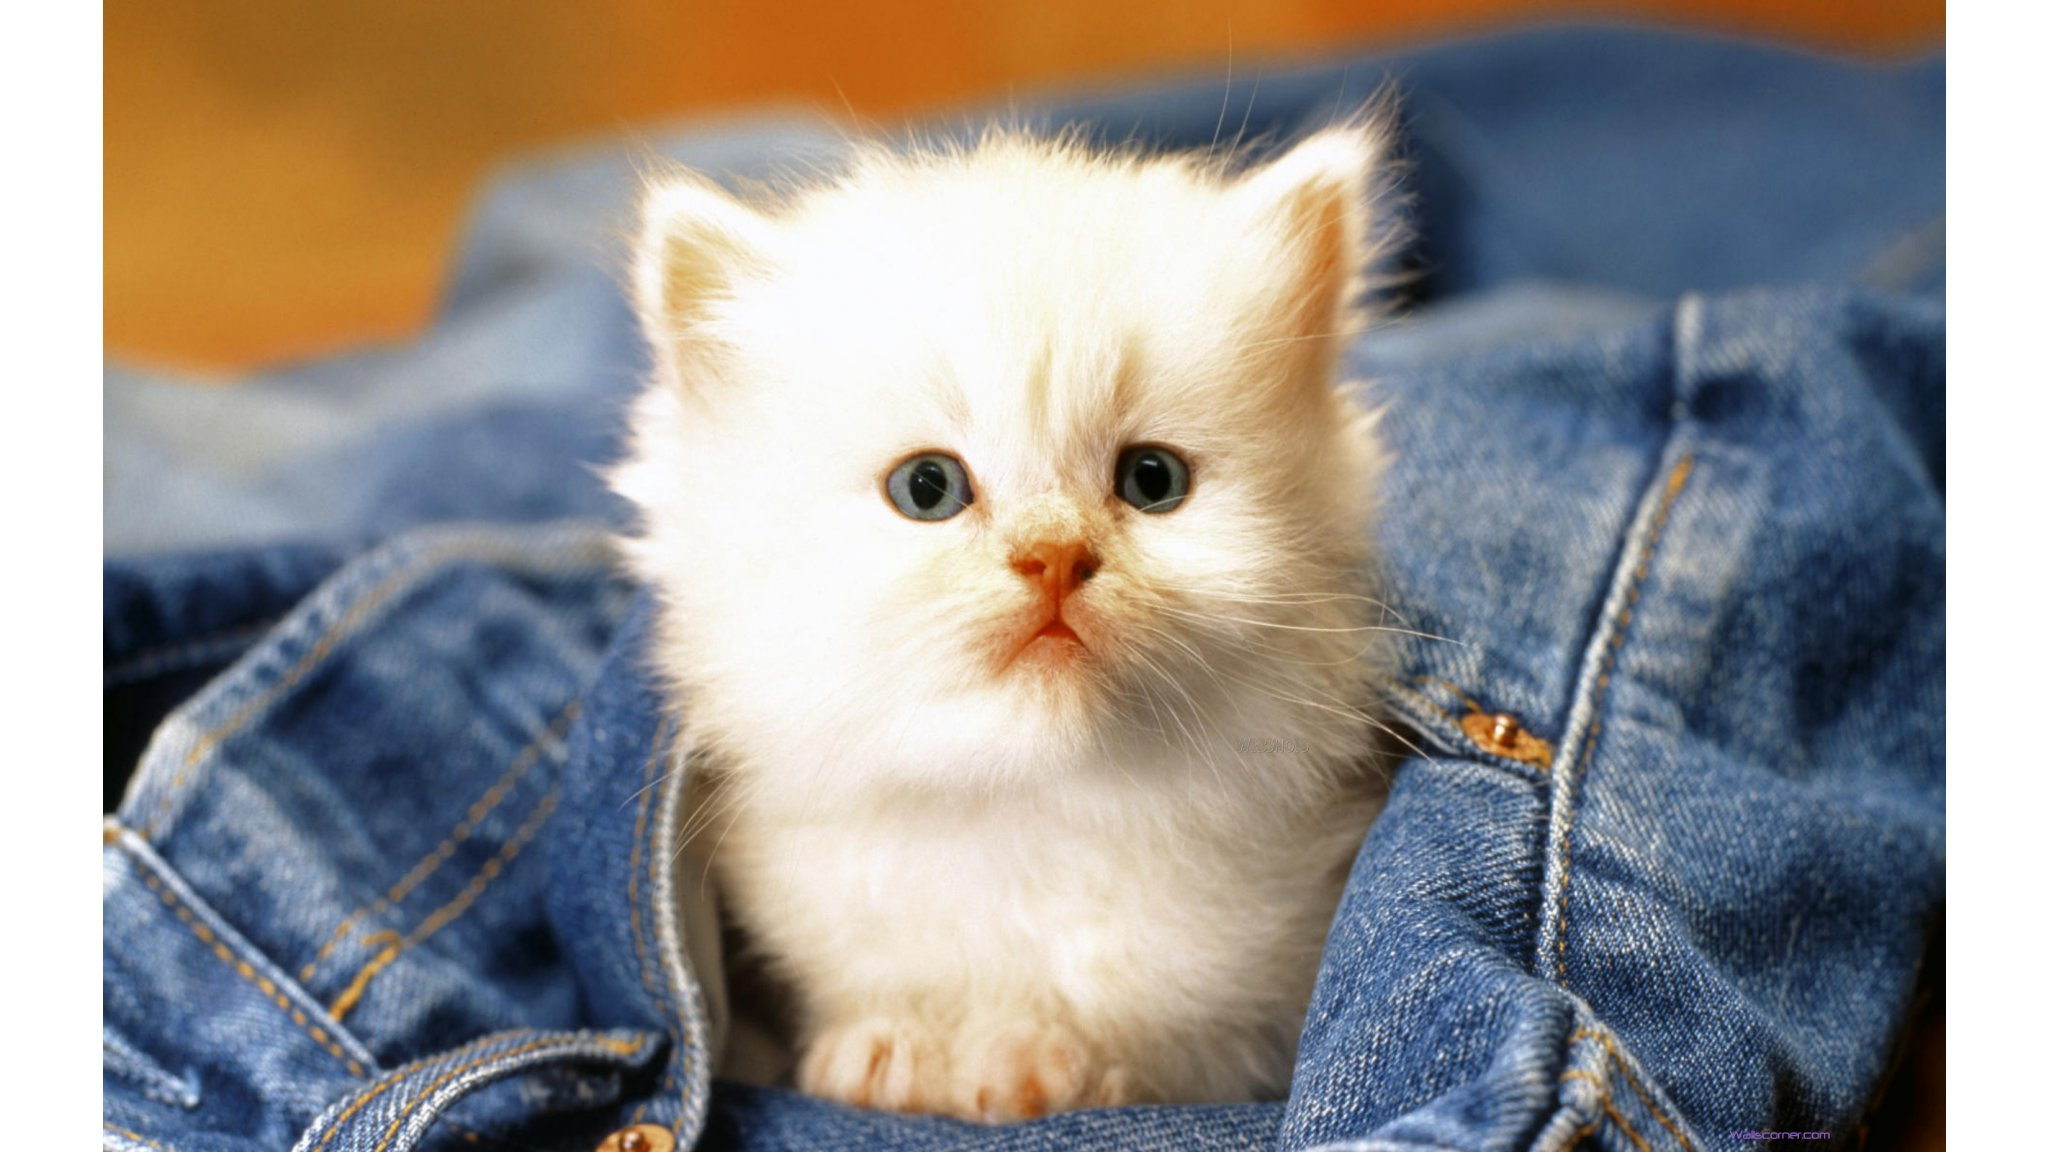 of cute cat baby beauty cute cat baby hd wallpaper wallpaper 2048x1152